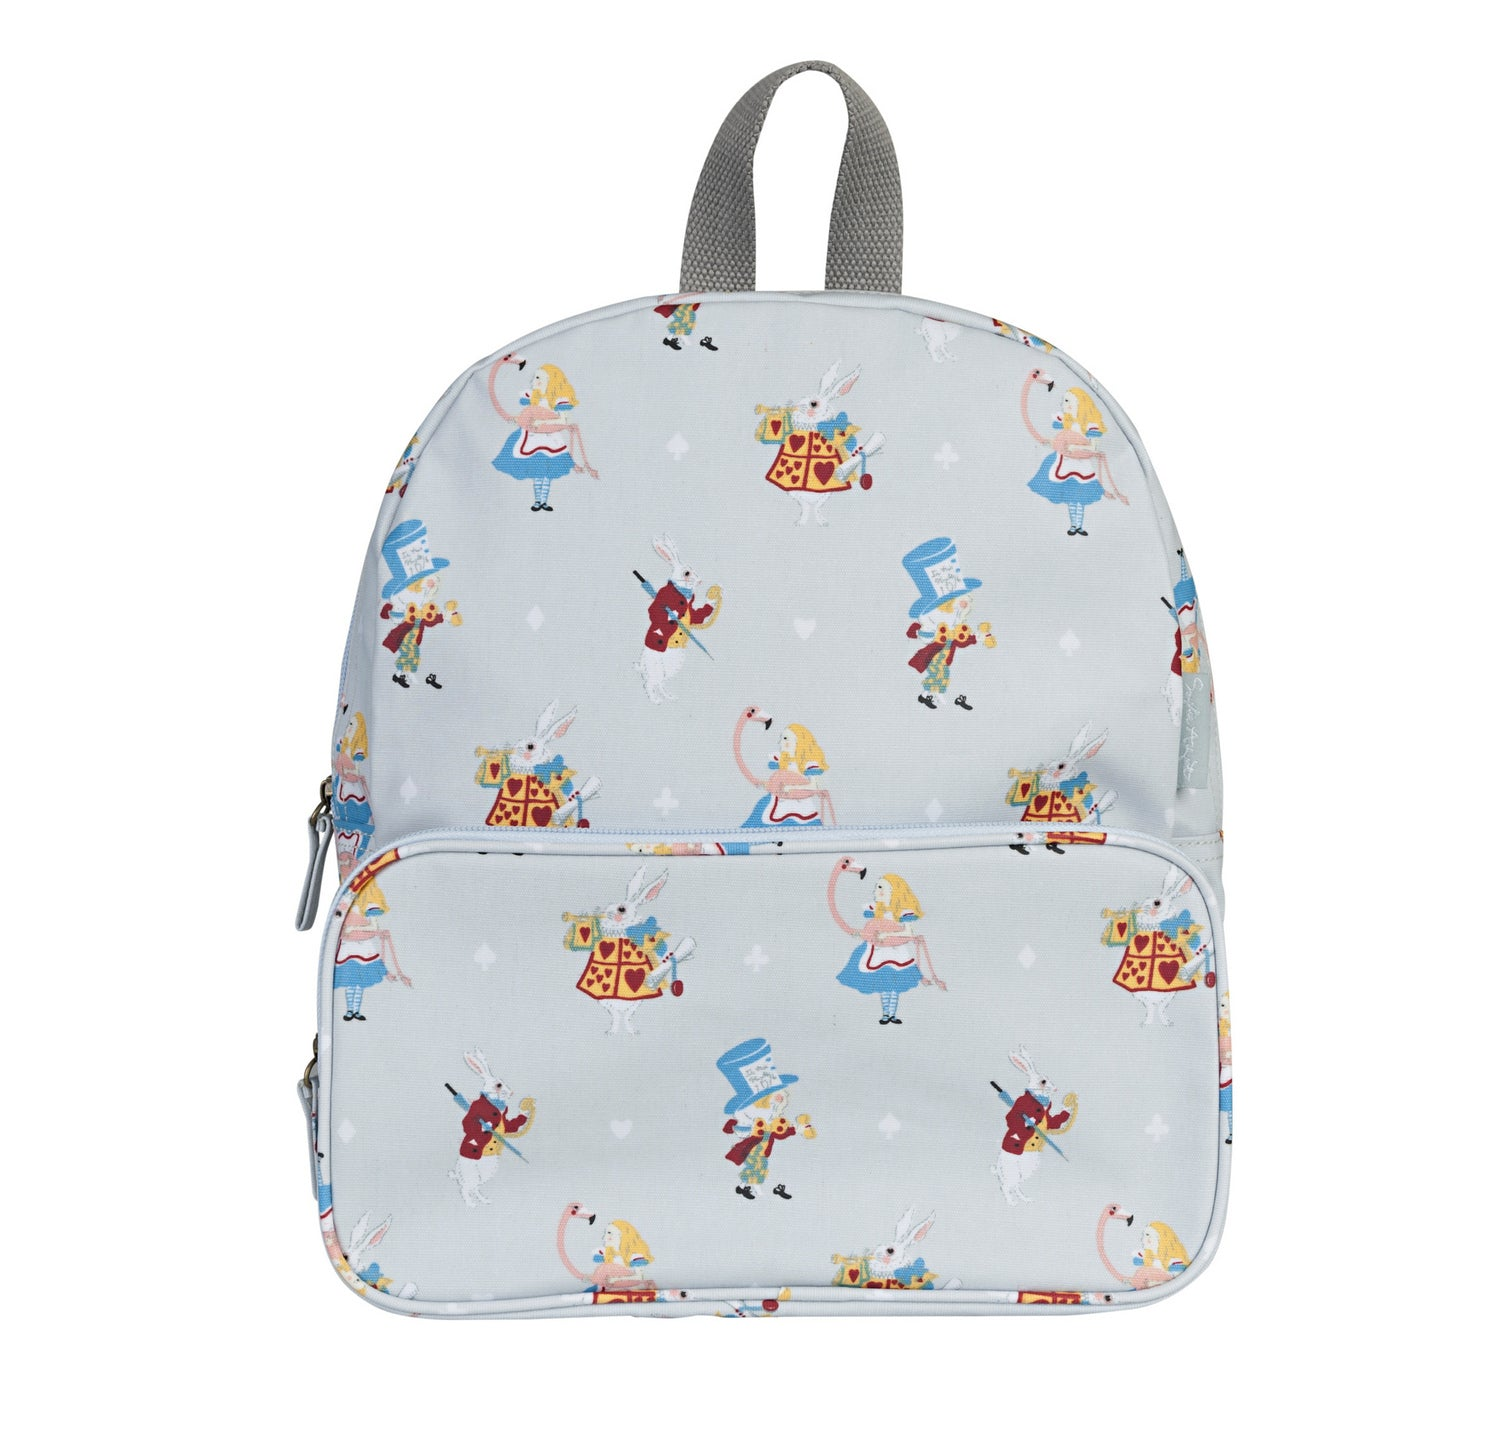 Alice in Wonderland Kids Backpack